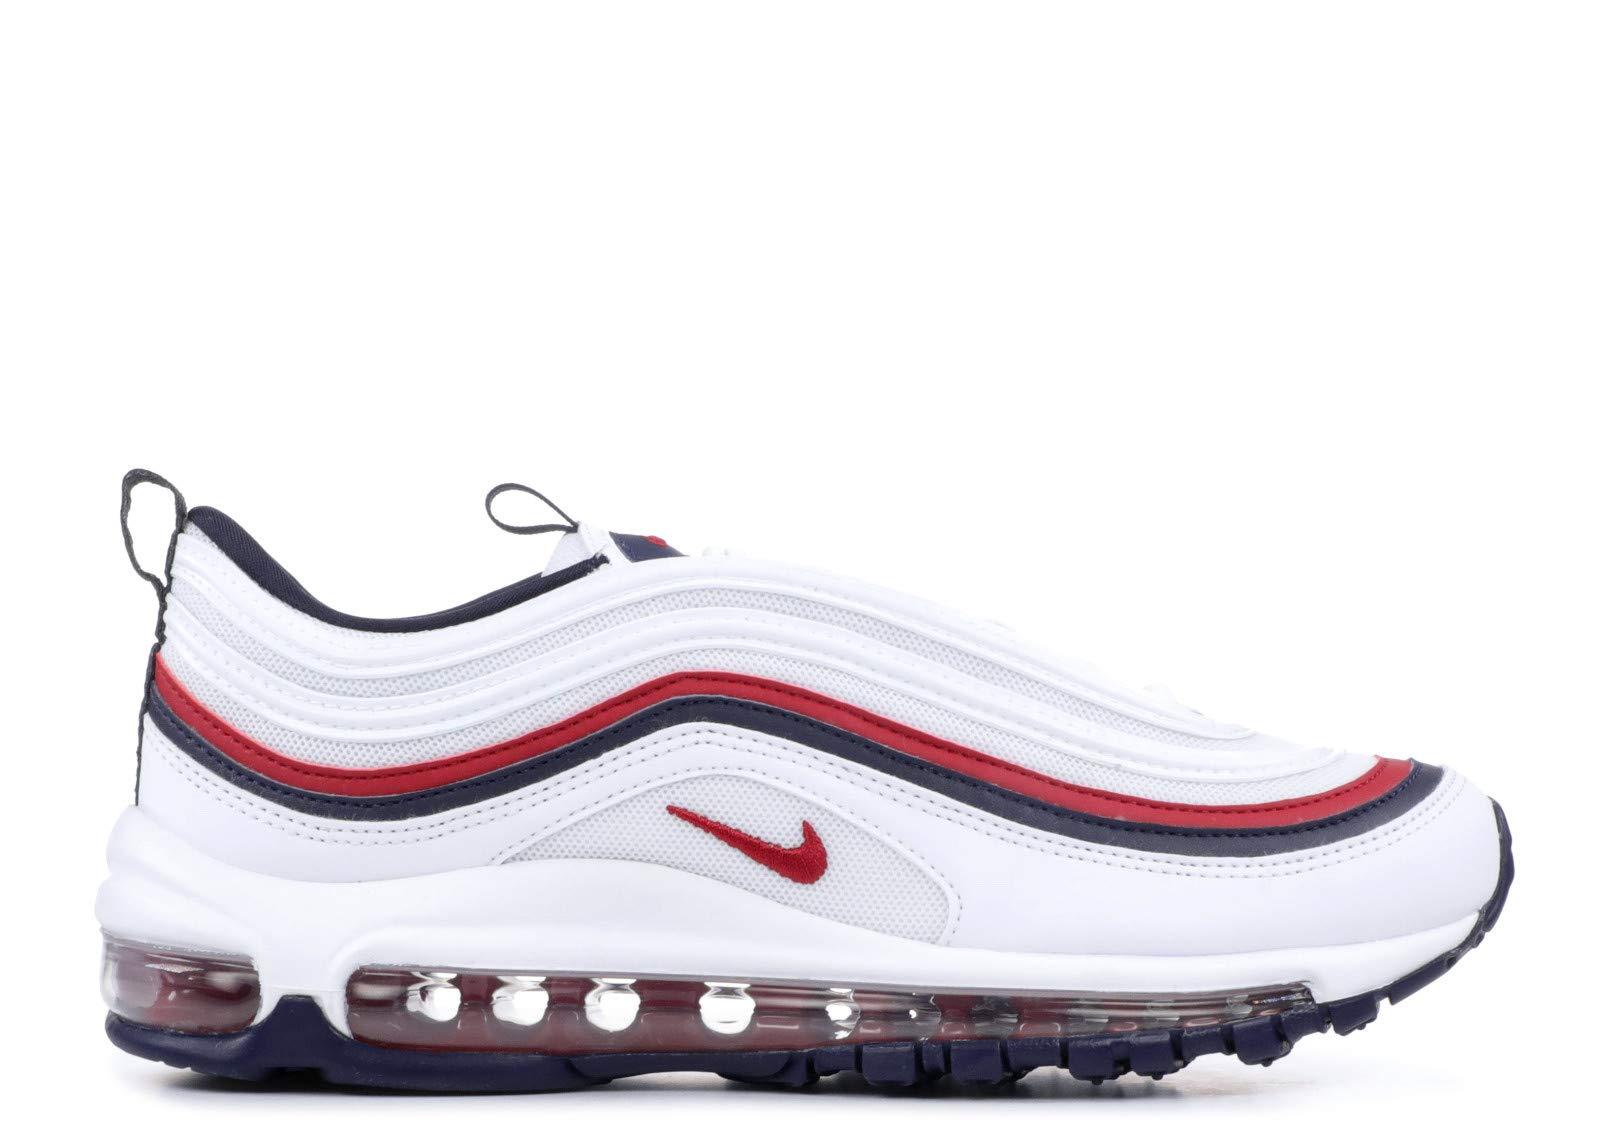 61zqtd2mjKL - Nike Women's W Air Max 97 Competition Running Shoes